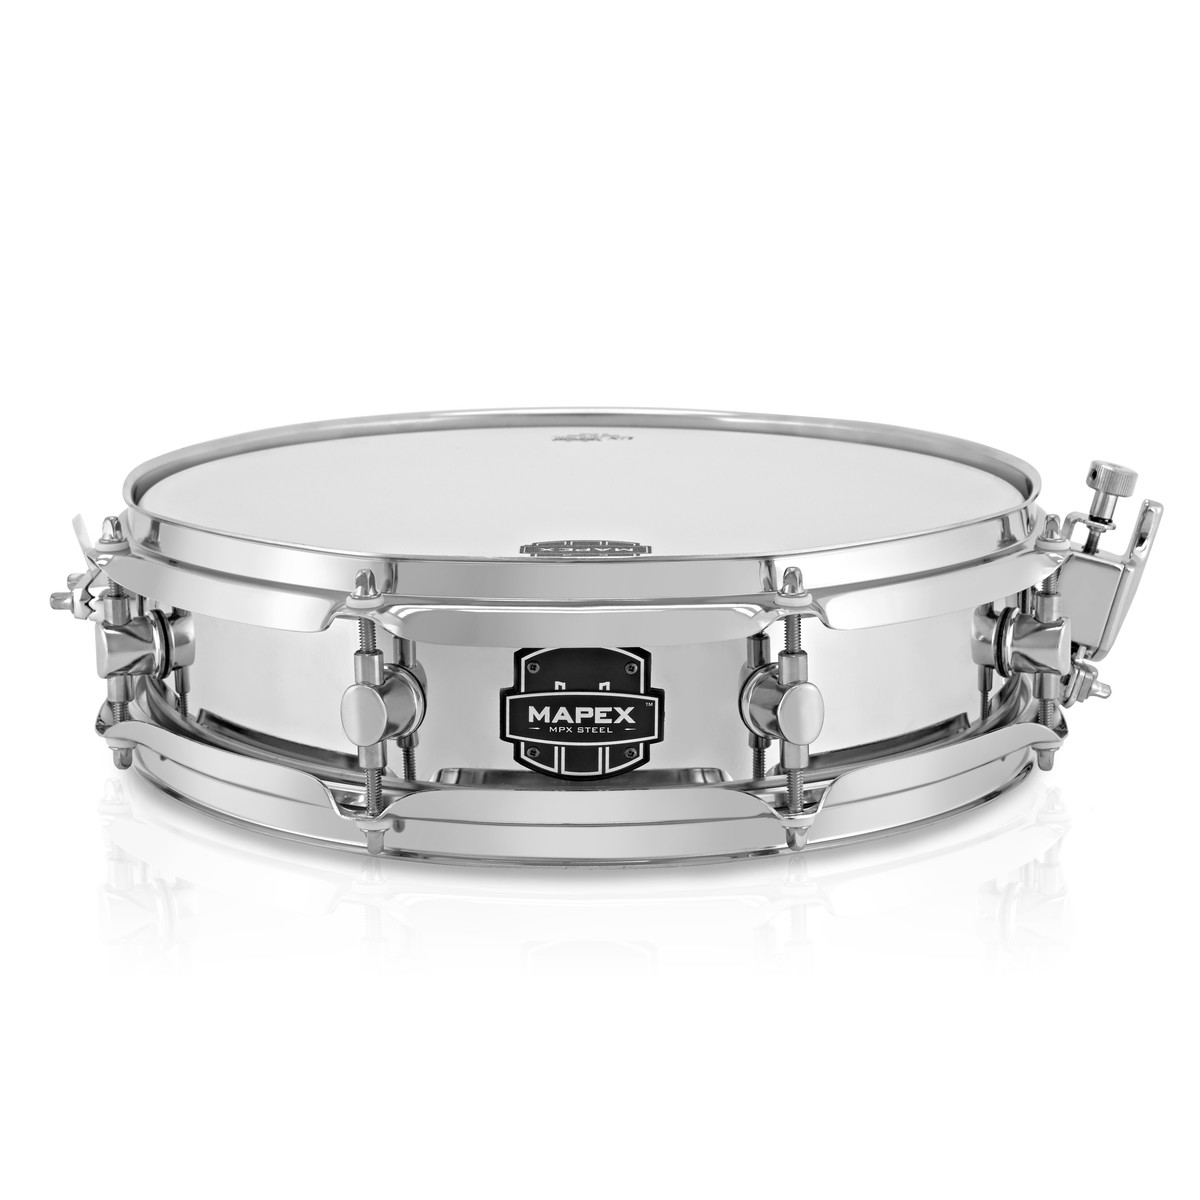 mapex mpx 13 x steel snare drum at gear4music. Black Bedroom Furniture Sets. Home Design Ideas